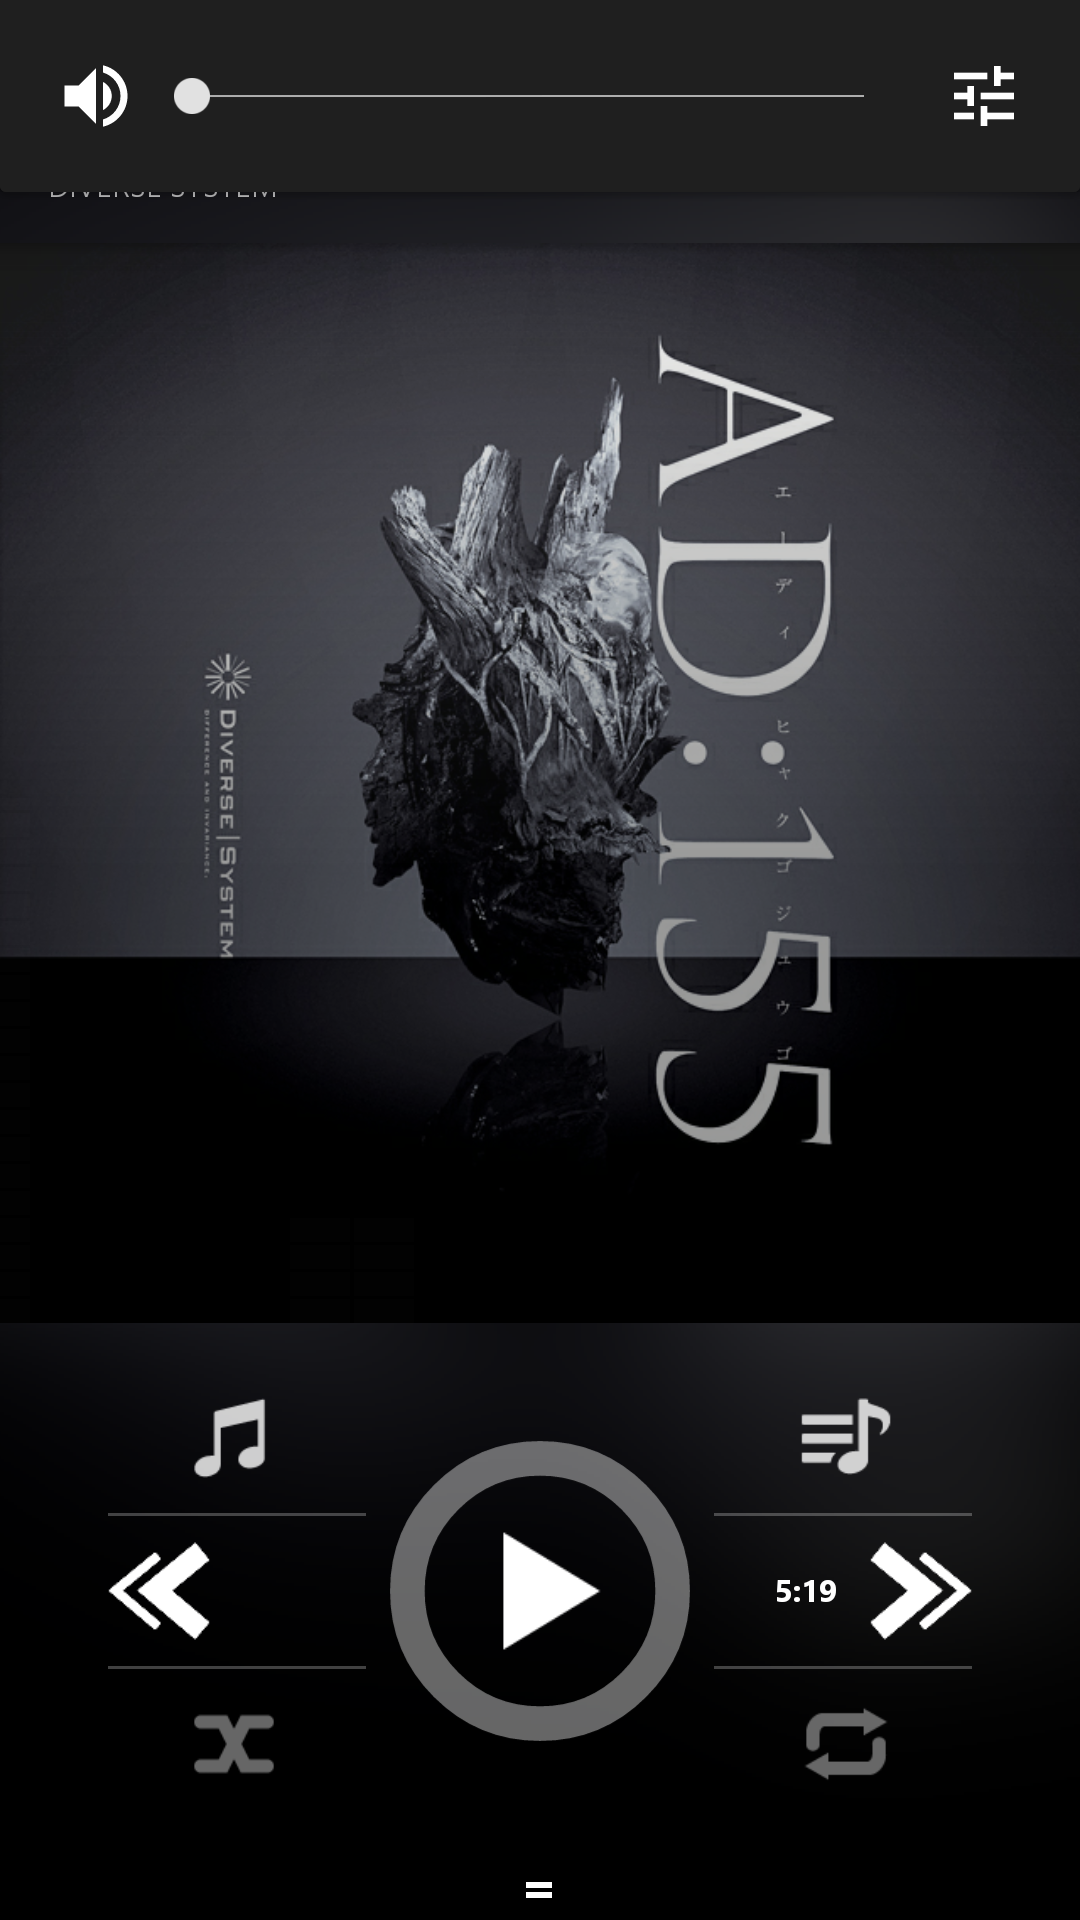 APK] [CM 12 1] Eleven Music Player | Page 2 - OnePlus Community